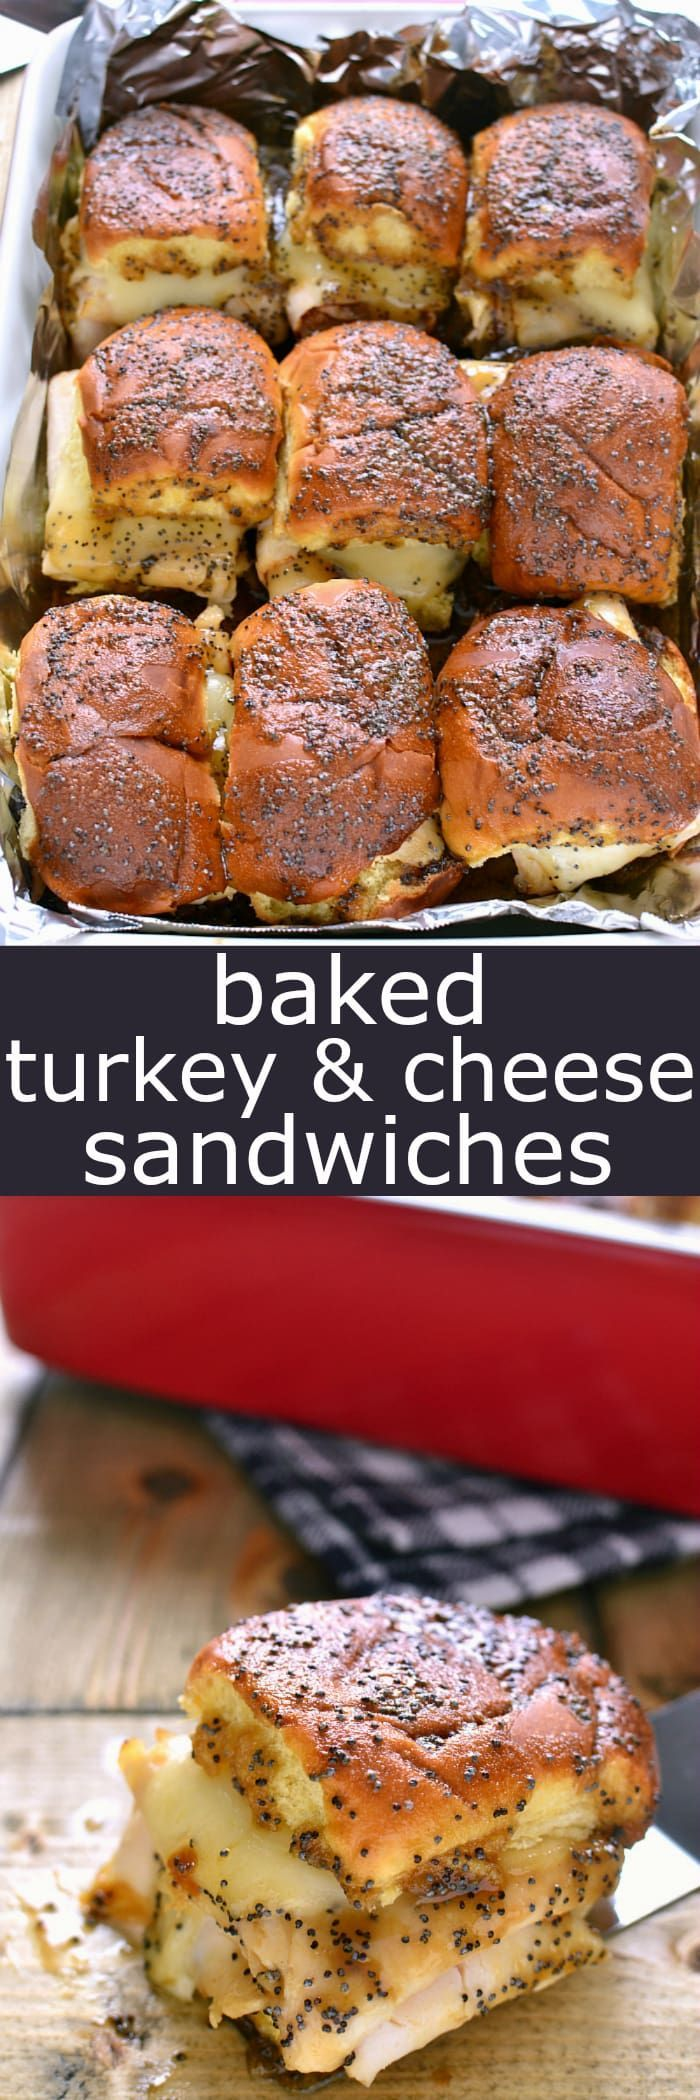 Baked turkey and cheese sandwiches